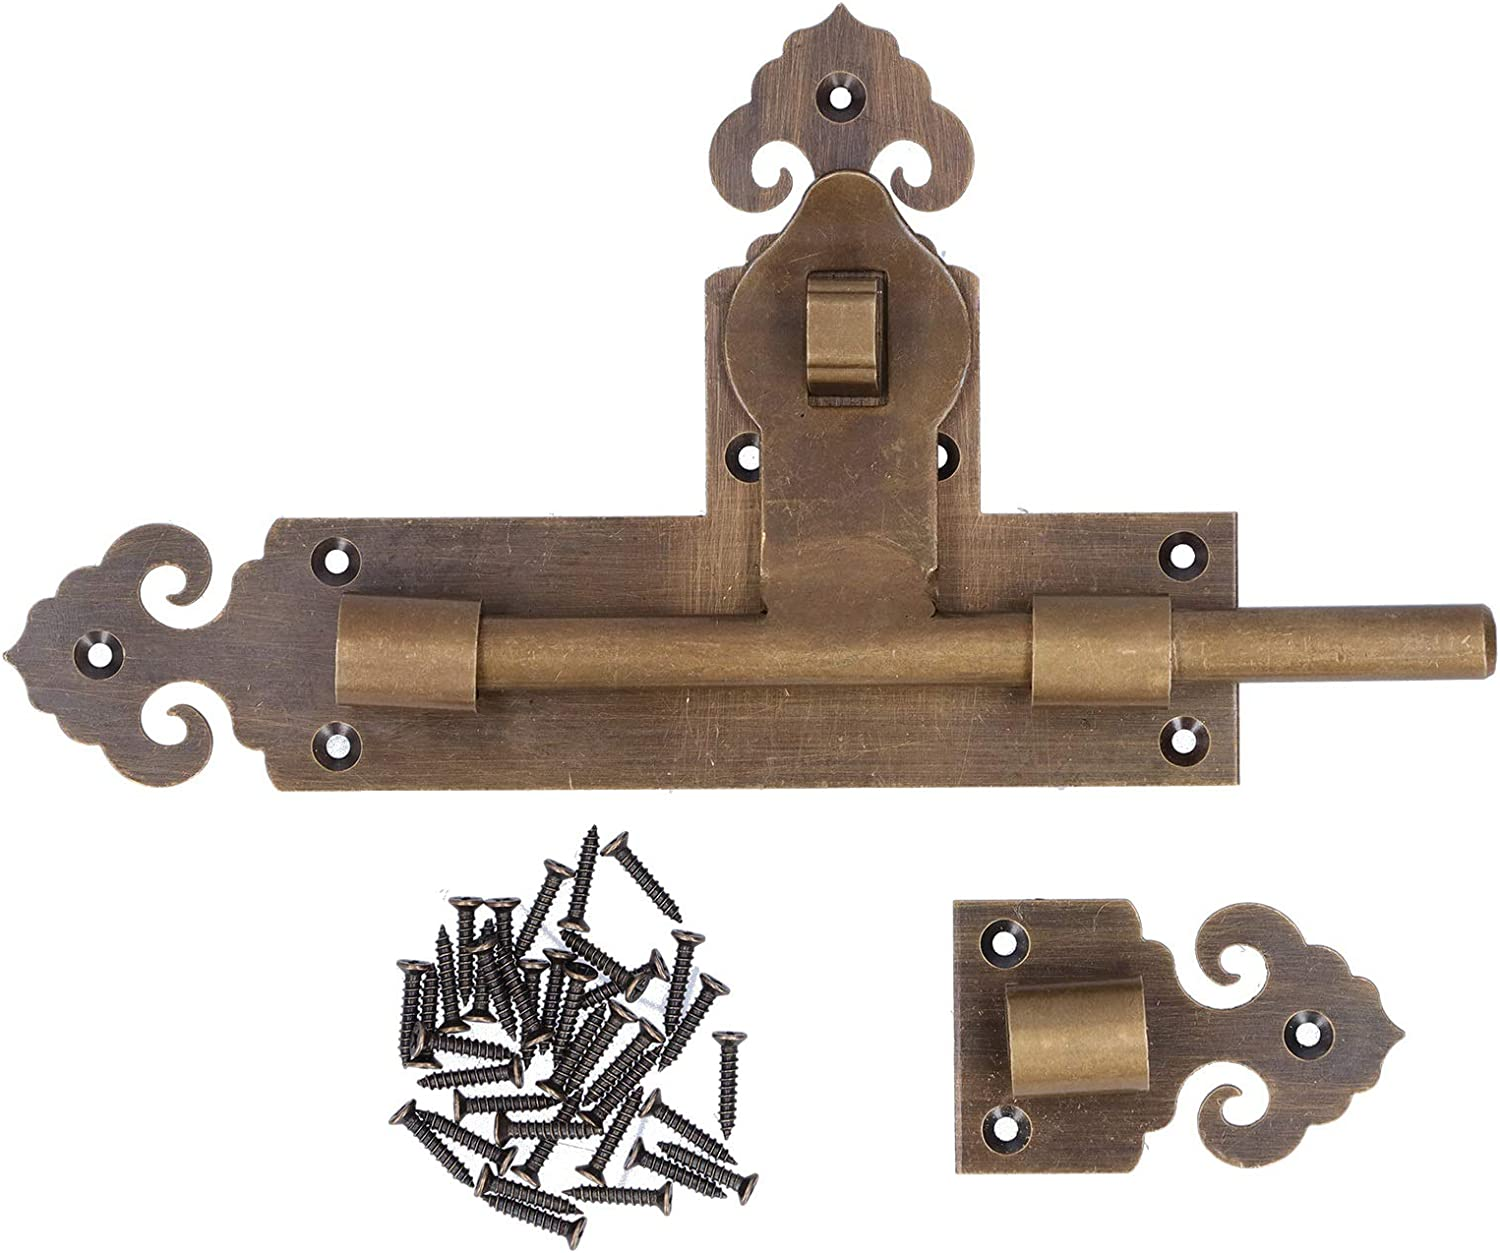 Chinese Style Brass Horizontal Price reduction Door Bolt Kit 37 Ranking TOP7 with Vil Screws